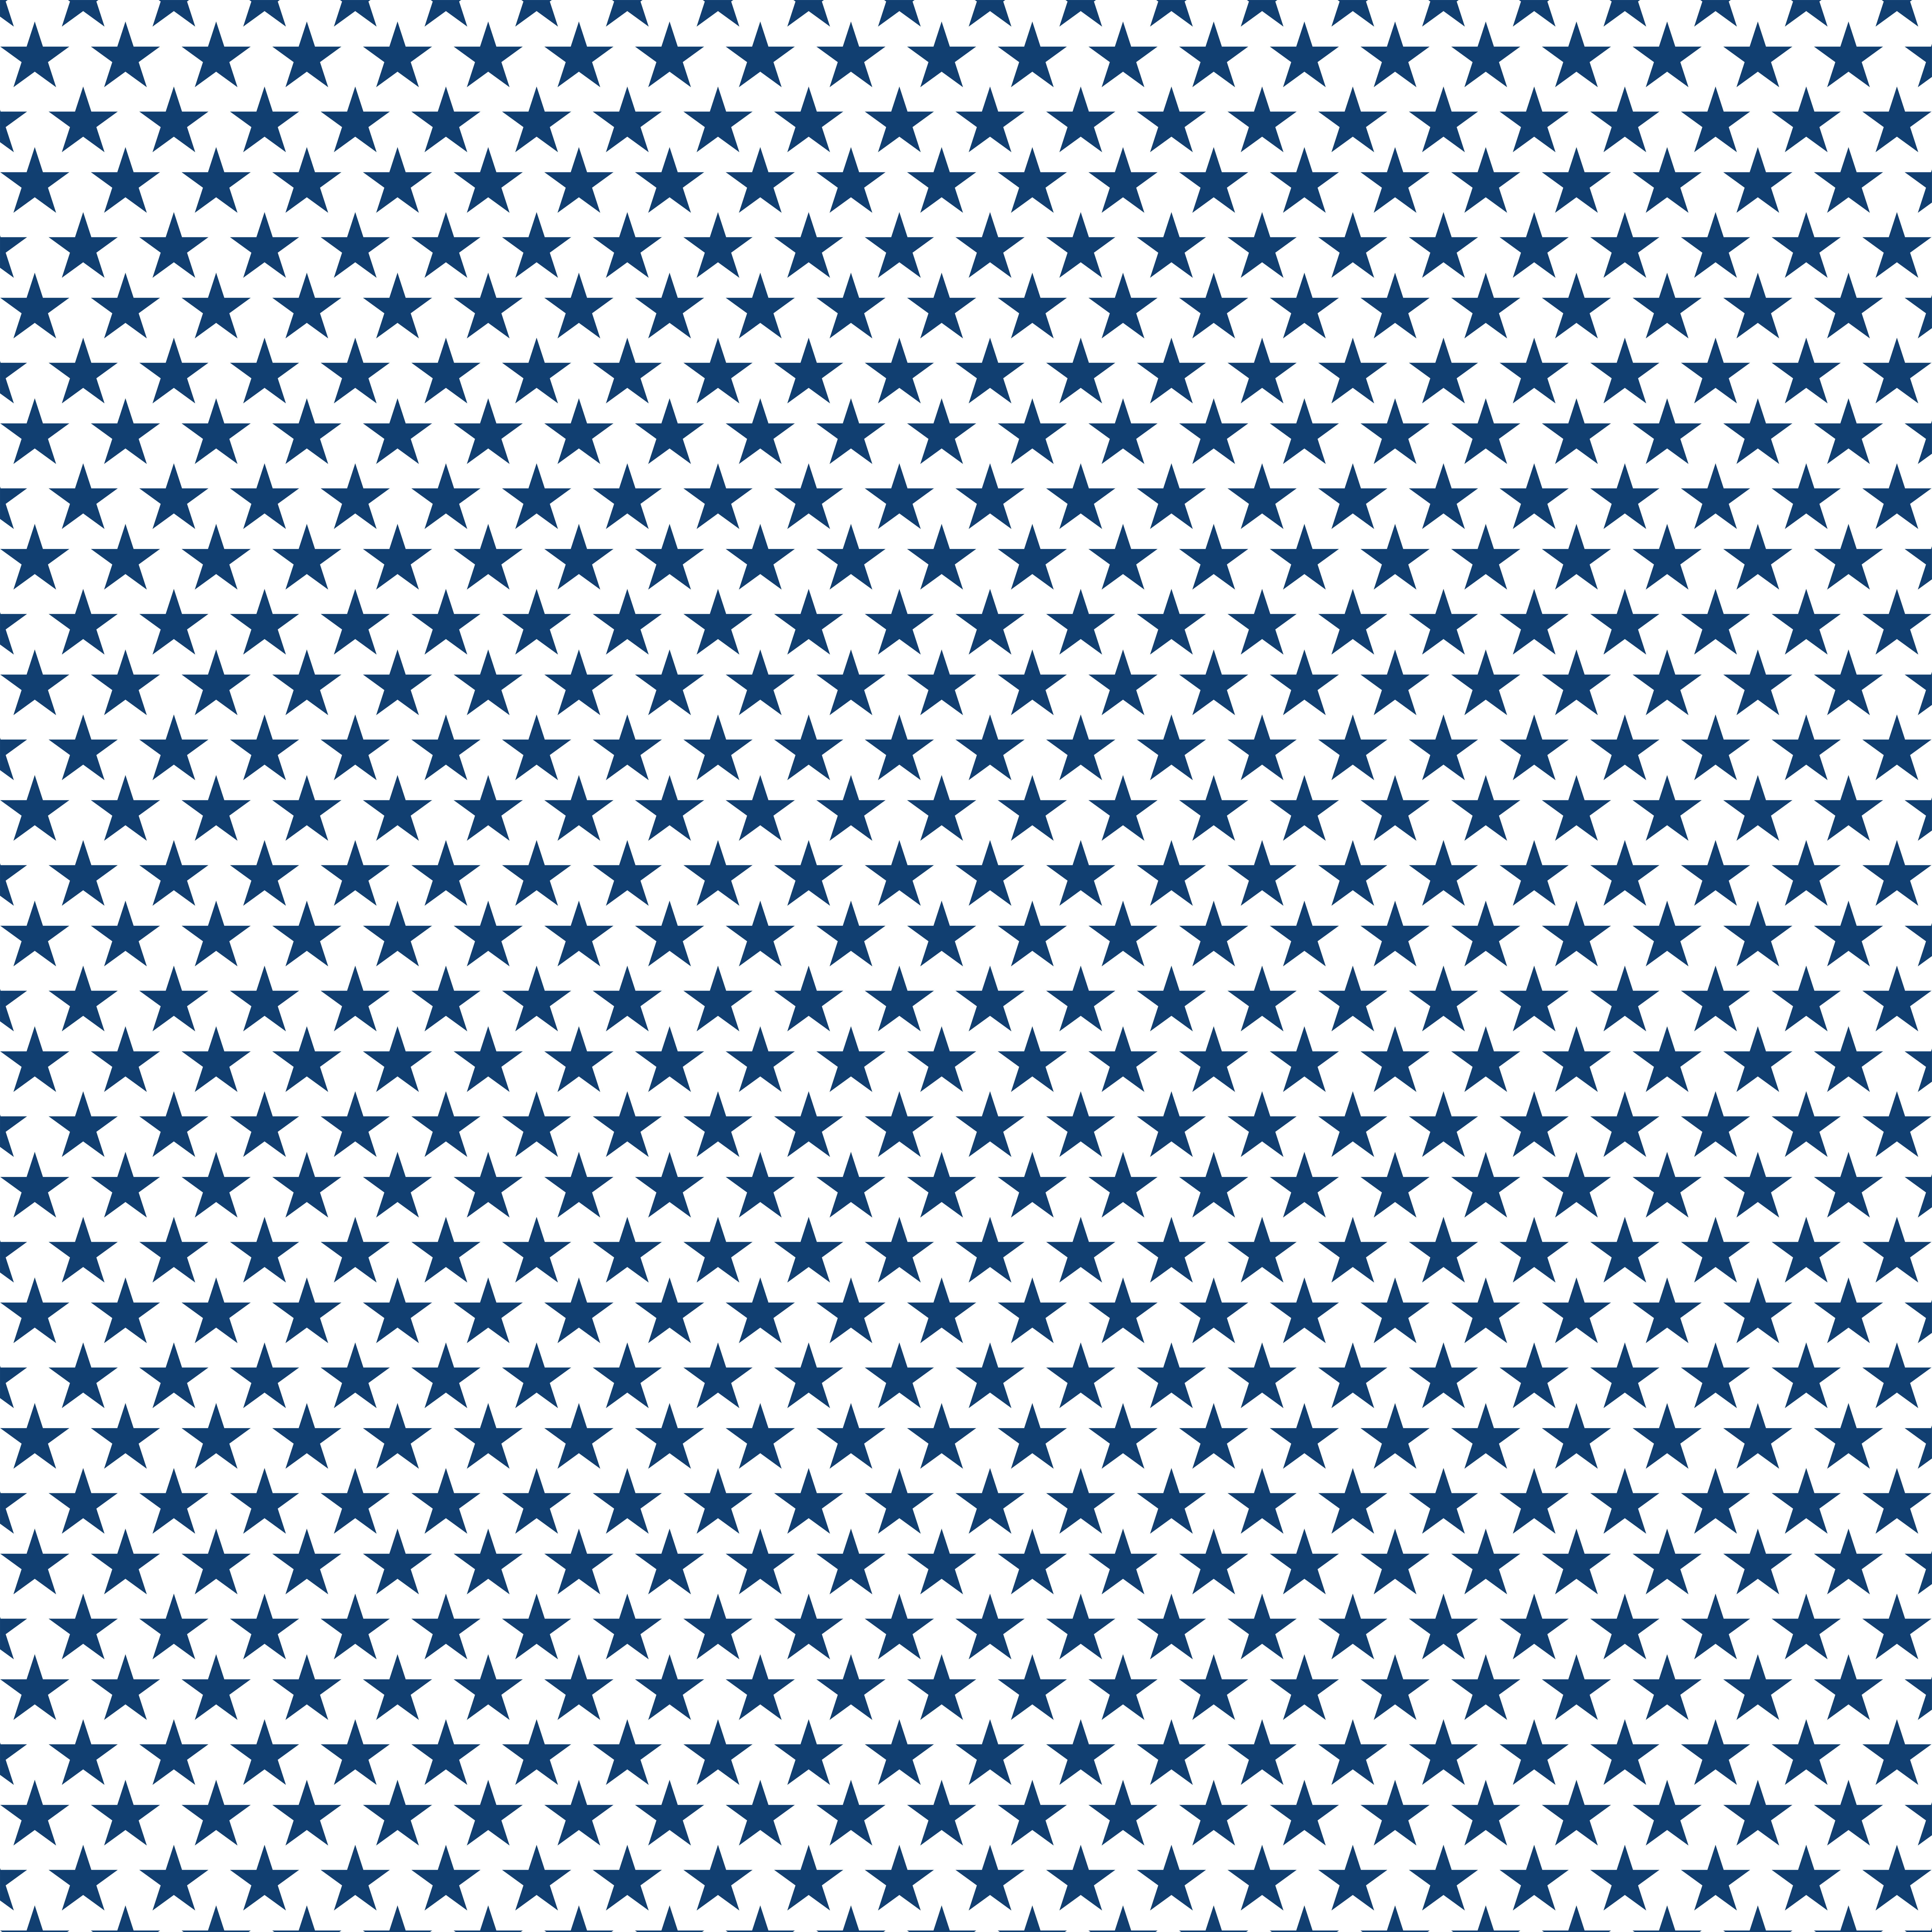 Stars for Backgrounds Transparent PNG Clip Art Image Gallery 8000x8001